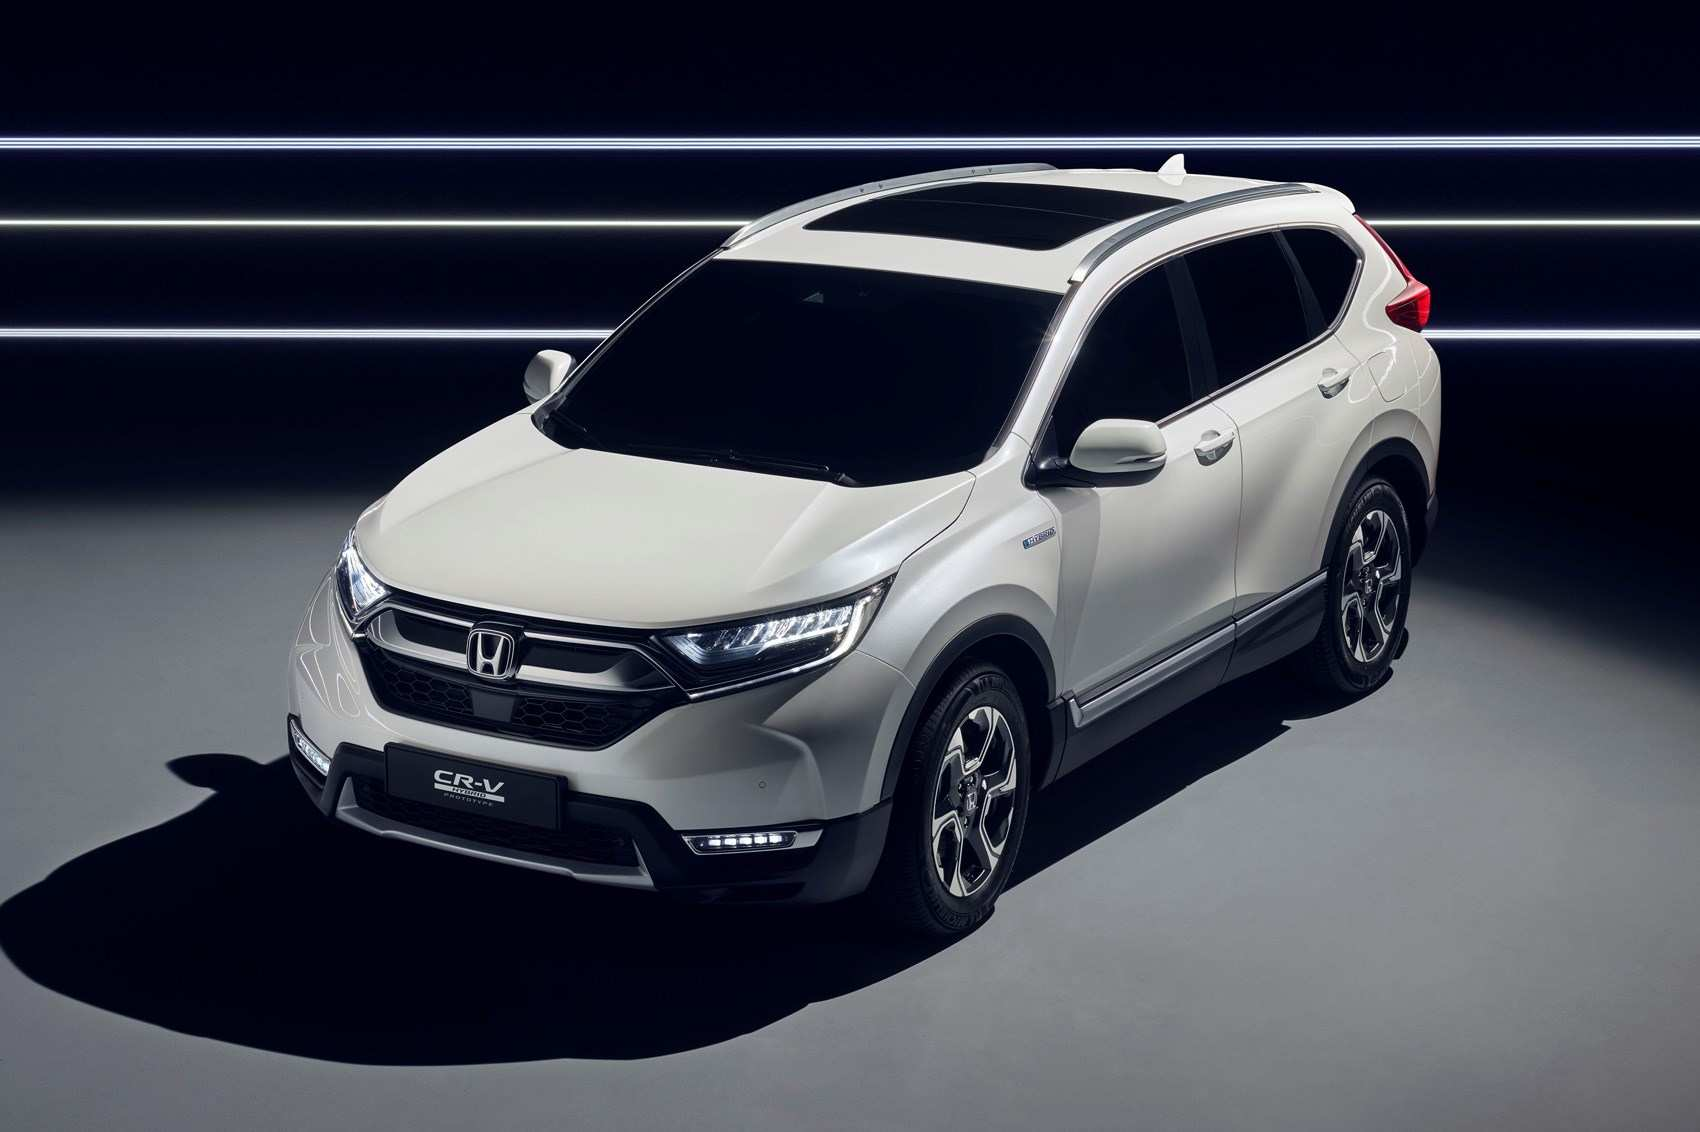 88 All New Honda Crv 2020 Price Performance and New Engine by Honda Crv 2020 Price